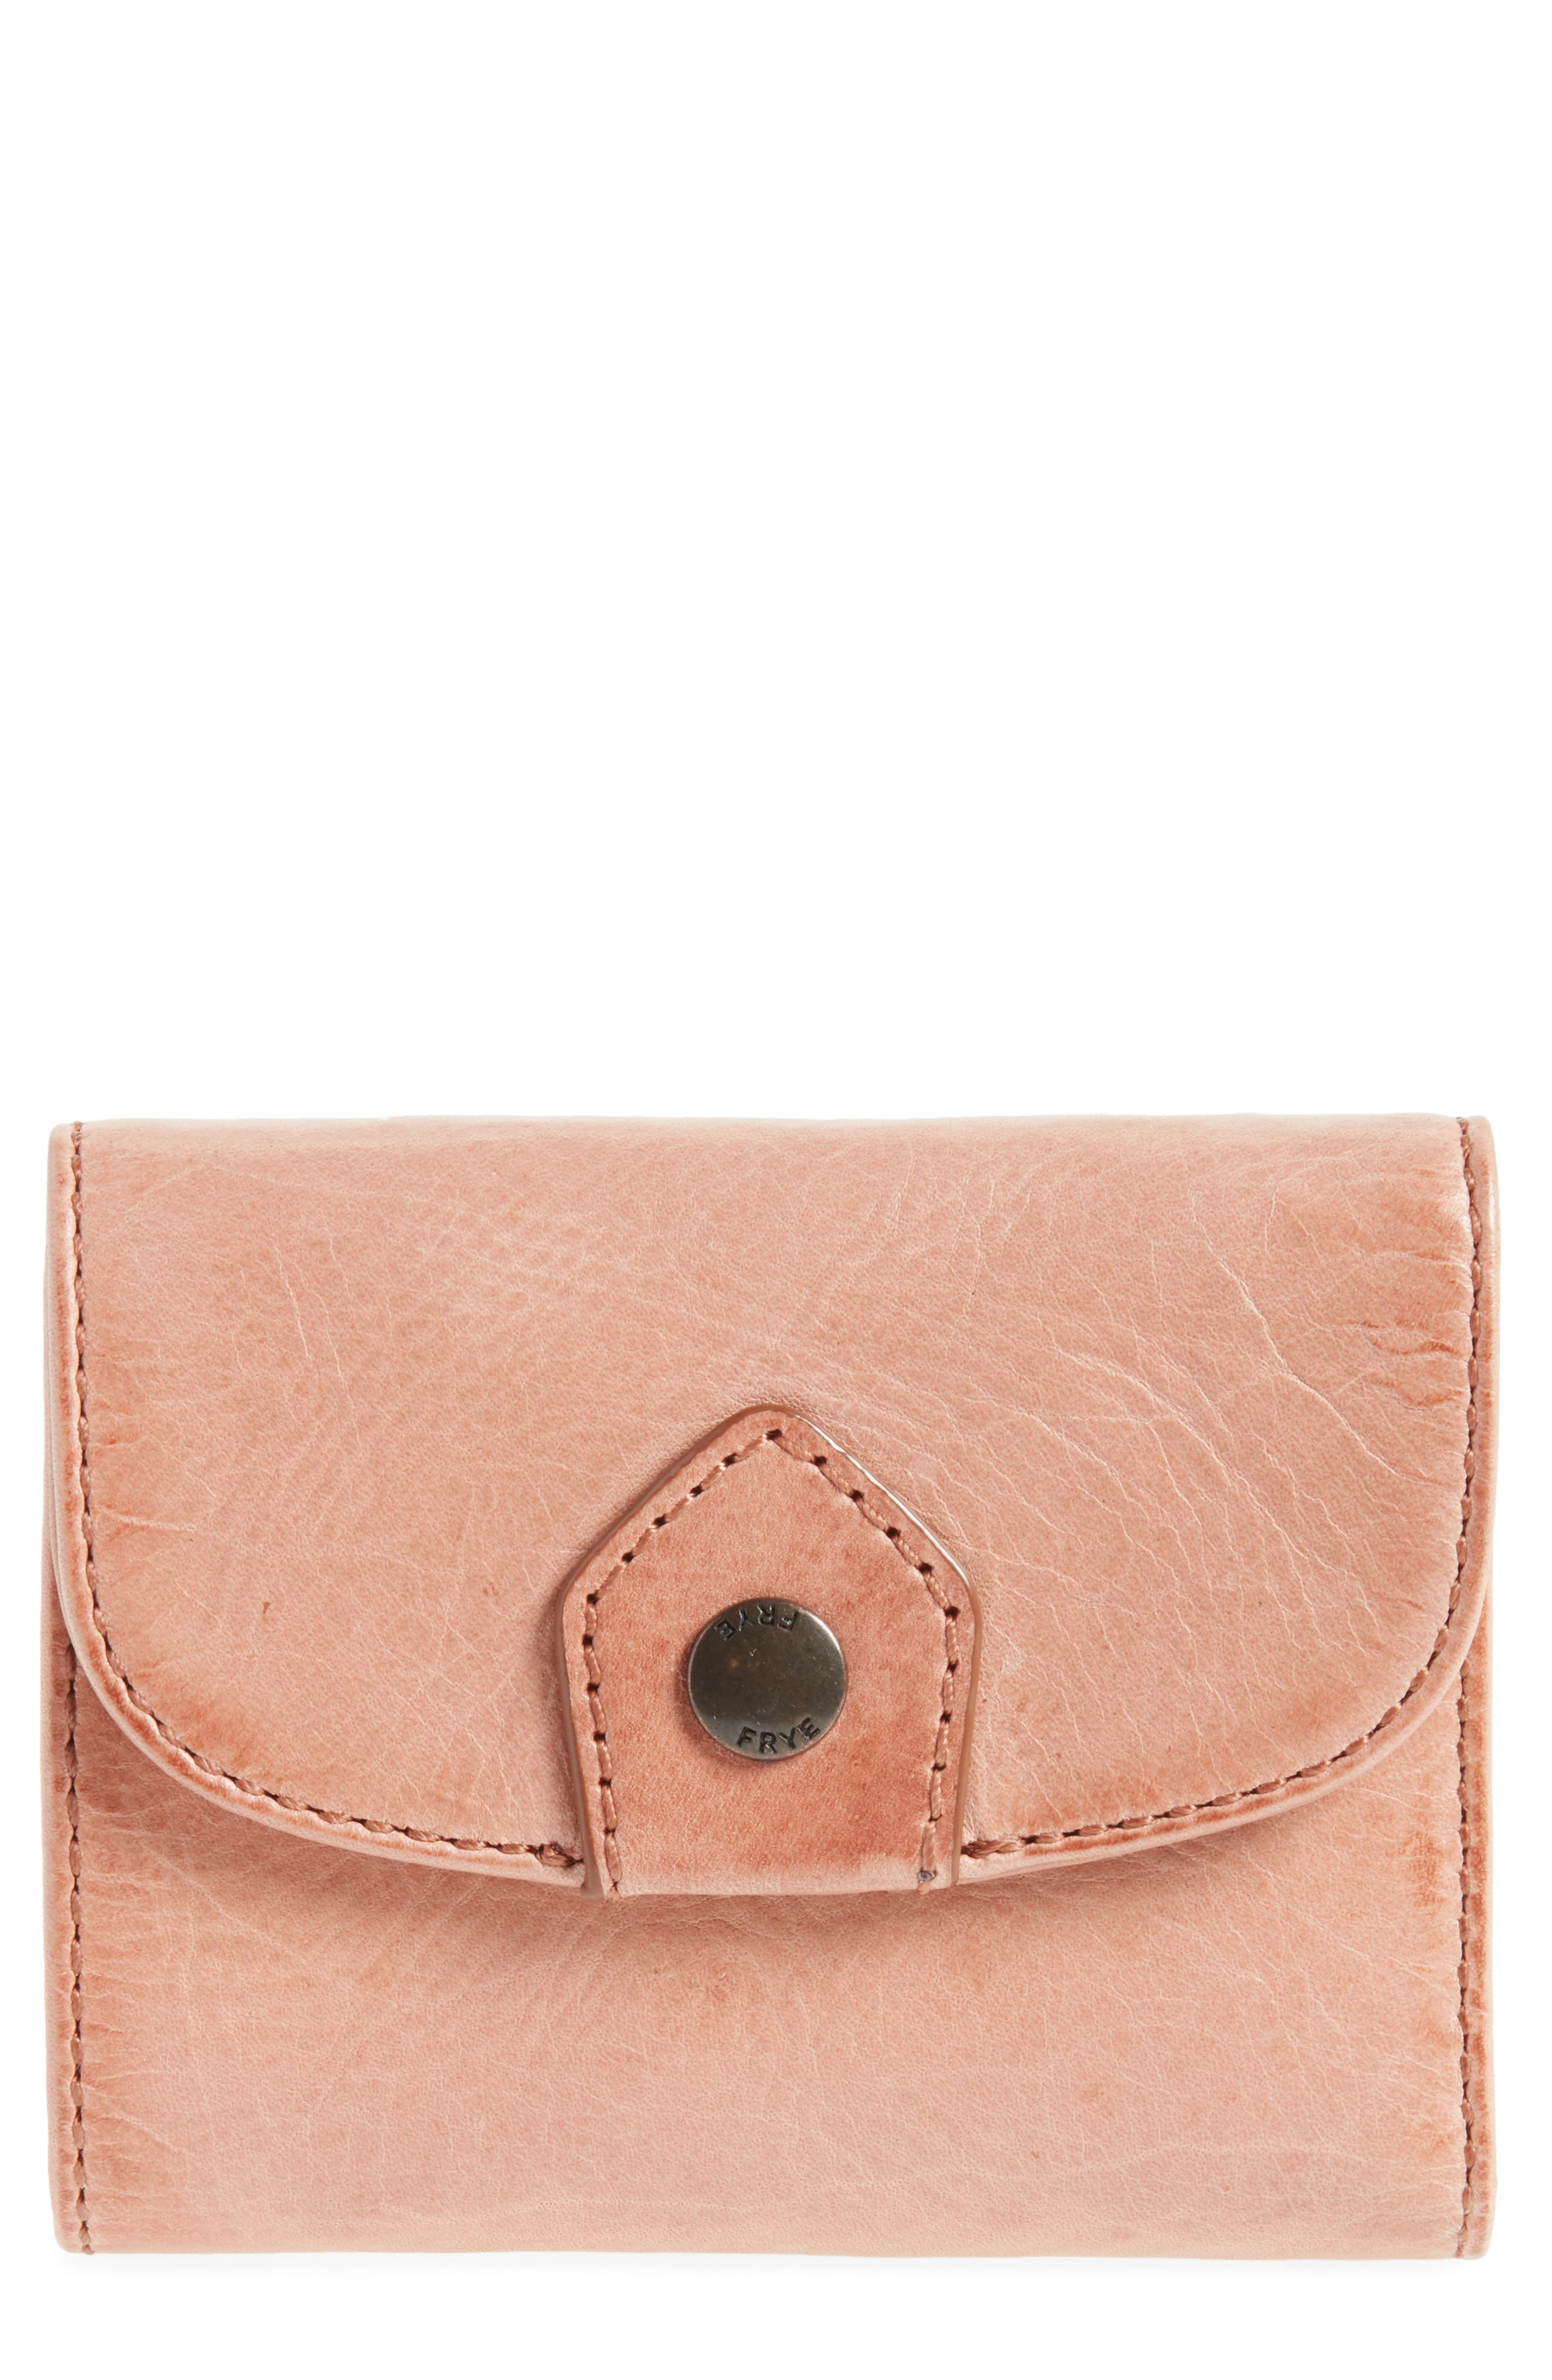 Melissa Medium Trifold Leather Wallet,                             Main thumbnail 1, color,                             Dusty Rose